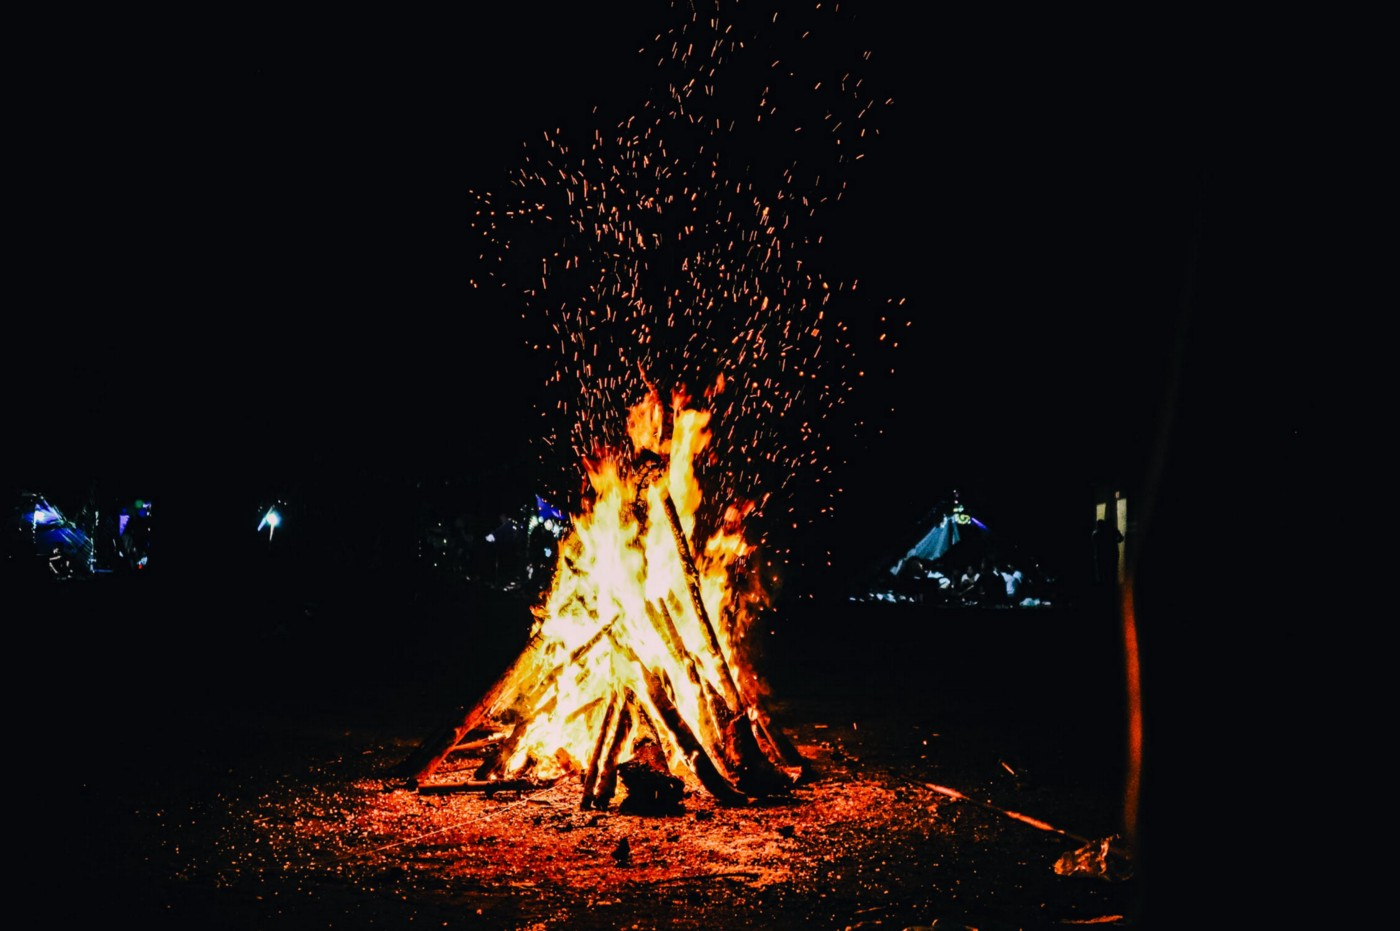 A bonfire sparks against a dark sky